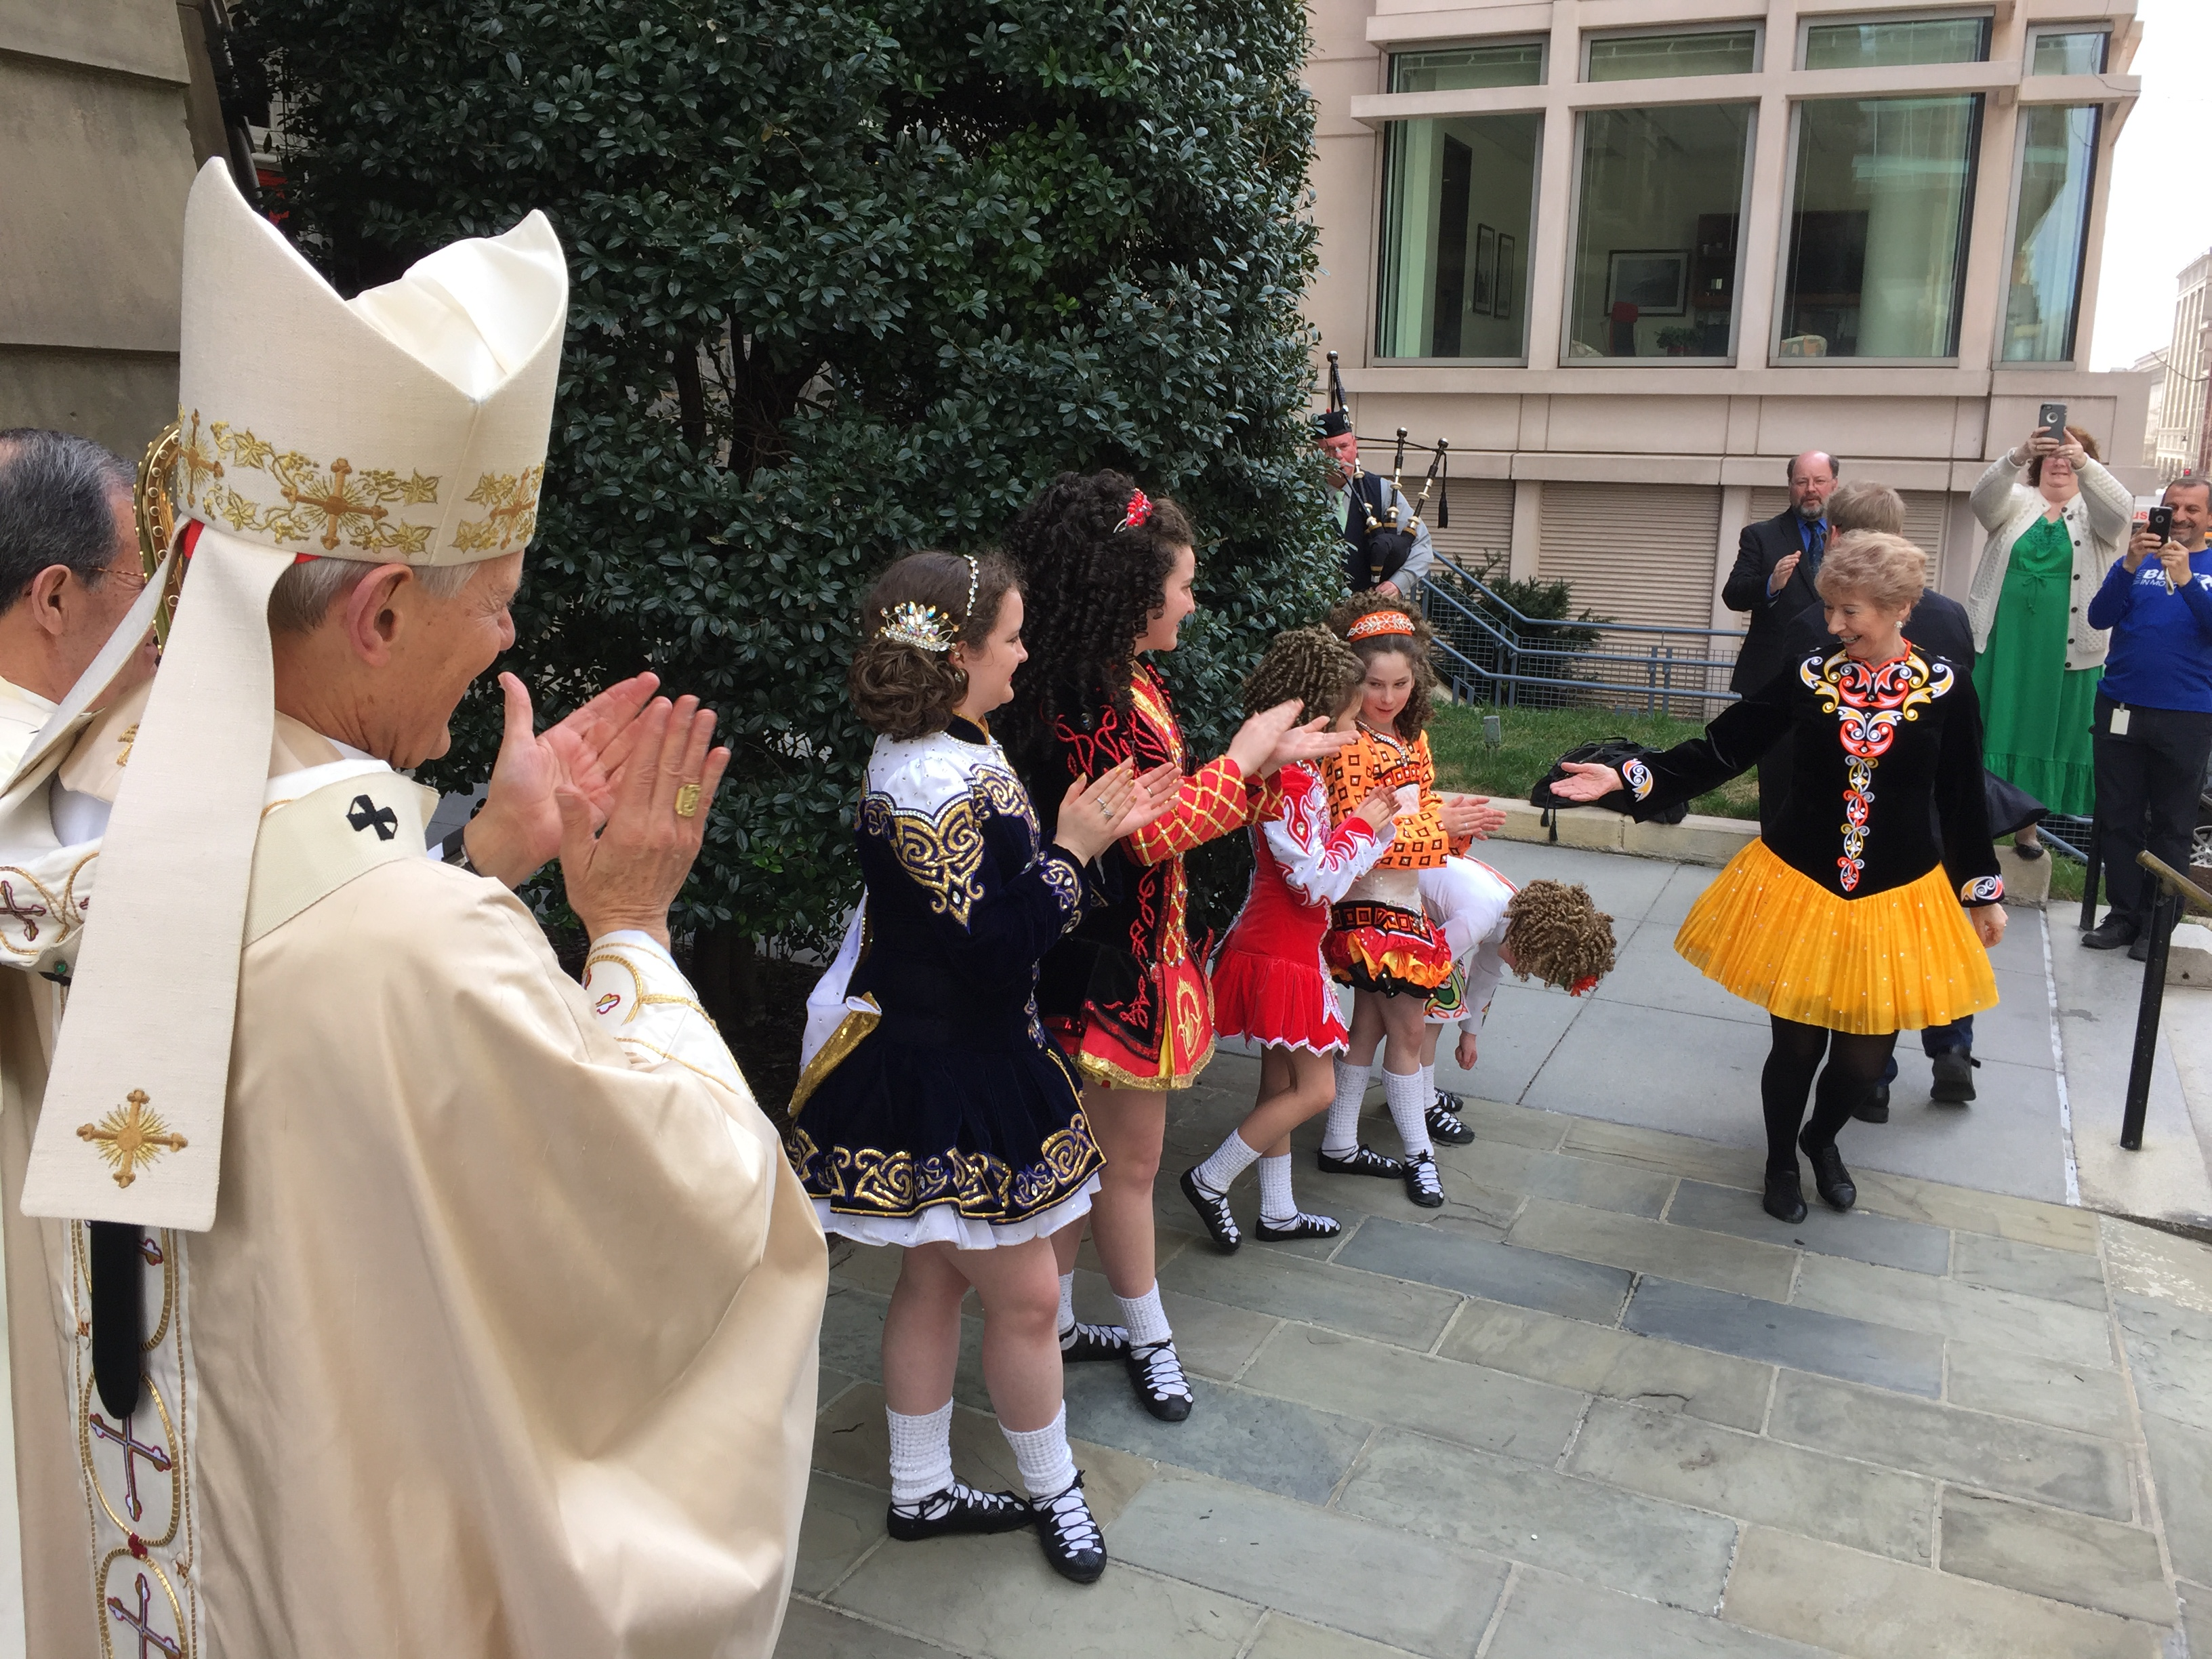 D.C. cardinal preaches St. Patrick's message on holiday (Photos)